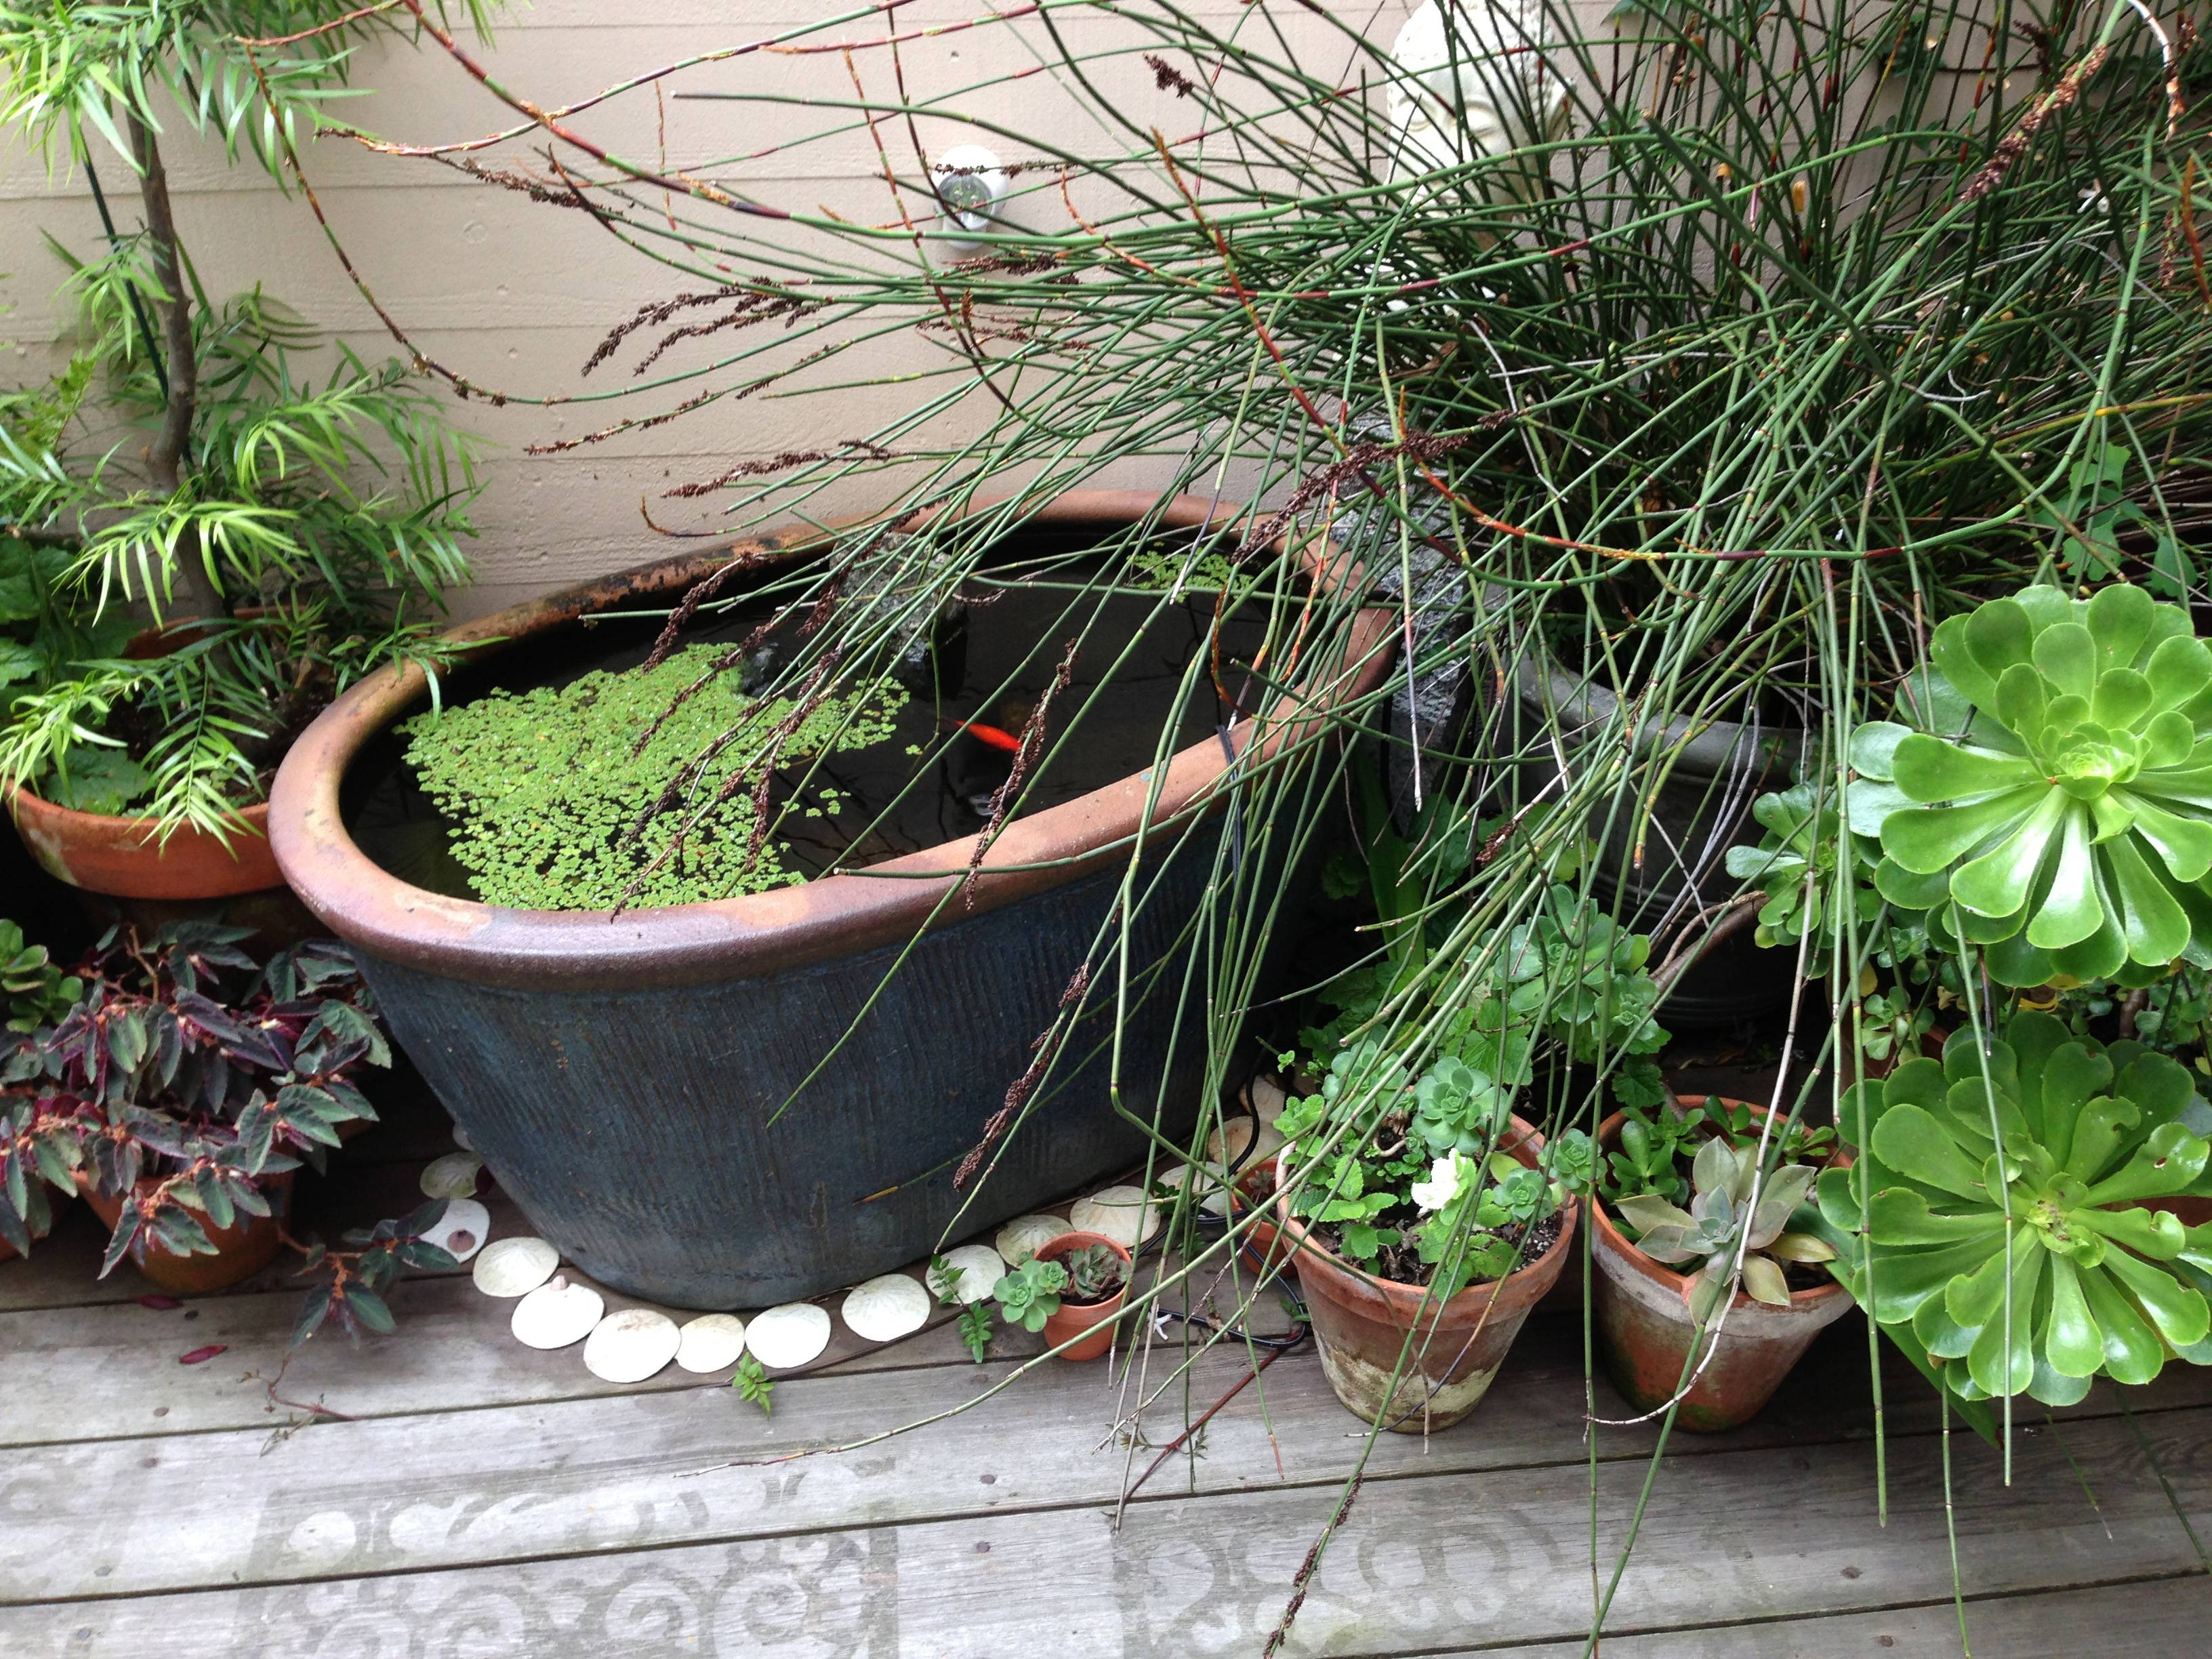 A Planter Can Be Used To Put Together A Simple Yet Relaxing Container Pond  For Your